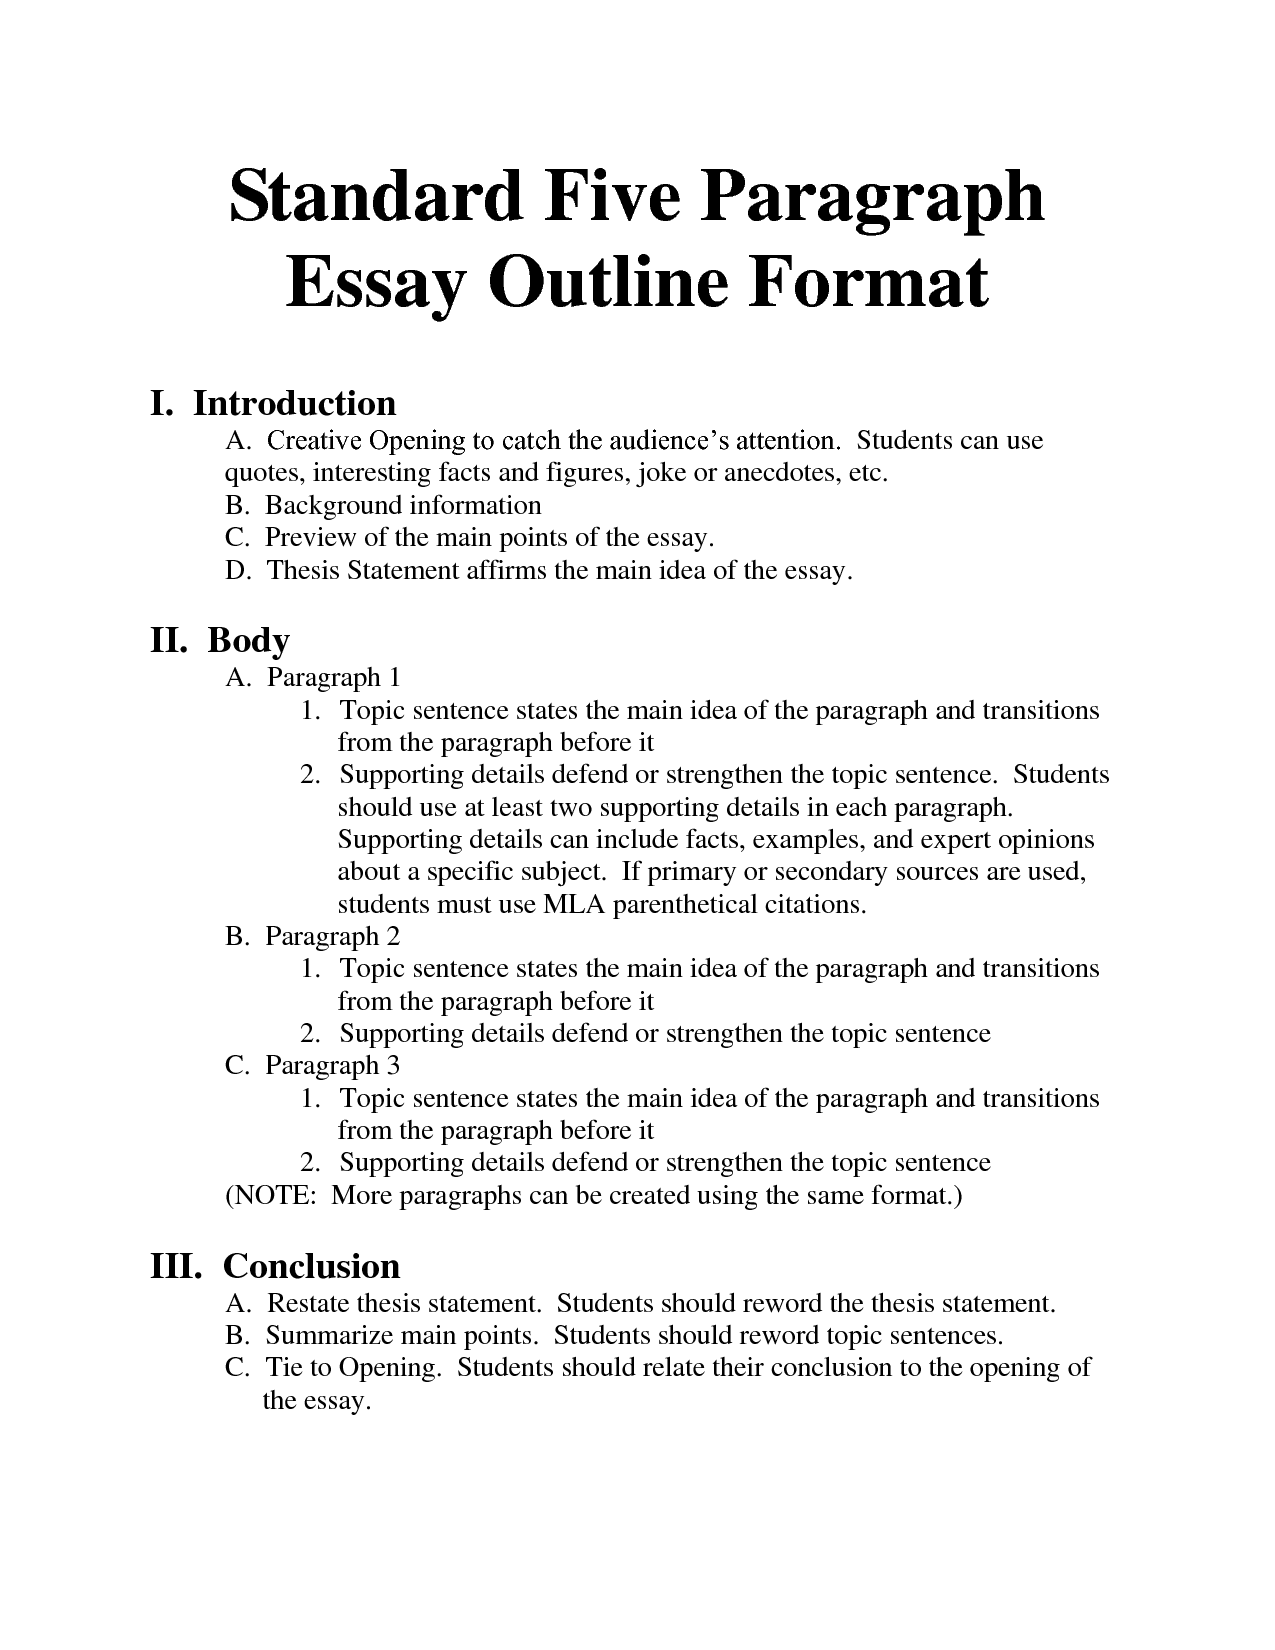 how to write a five paragraph essay outline how to write sample paragraph essay outline millers blog say you search and help me